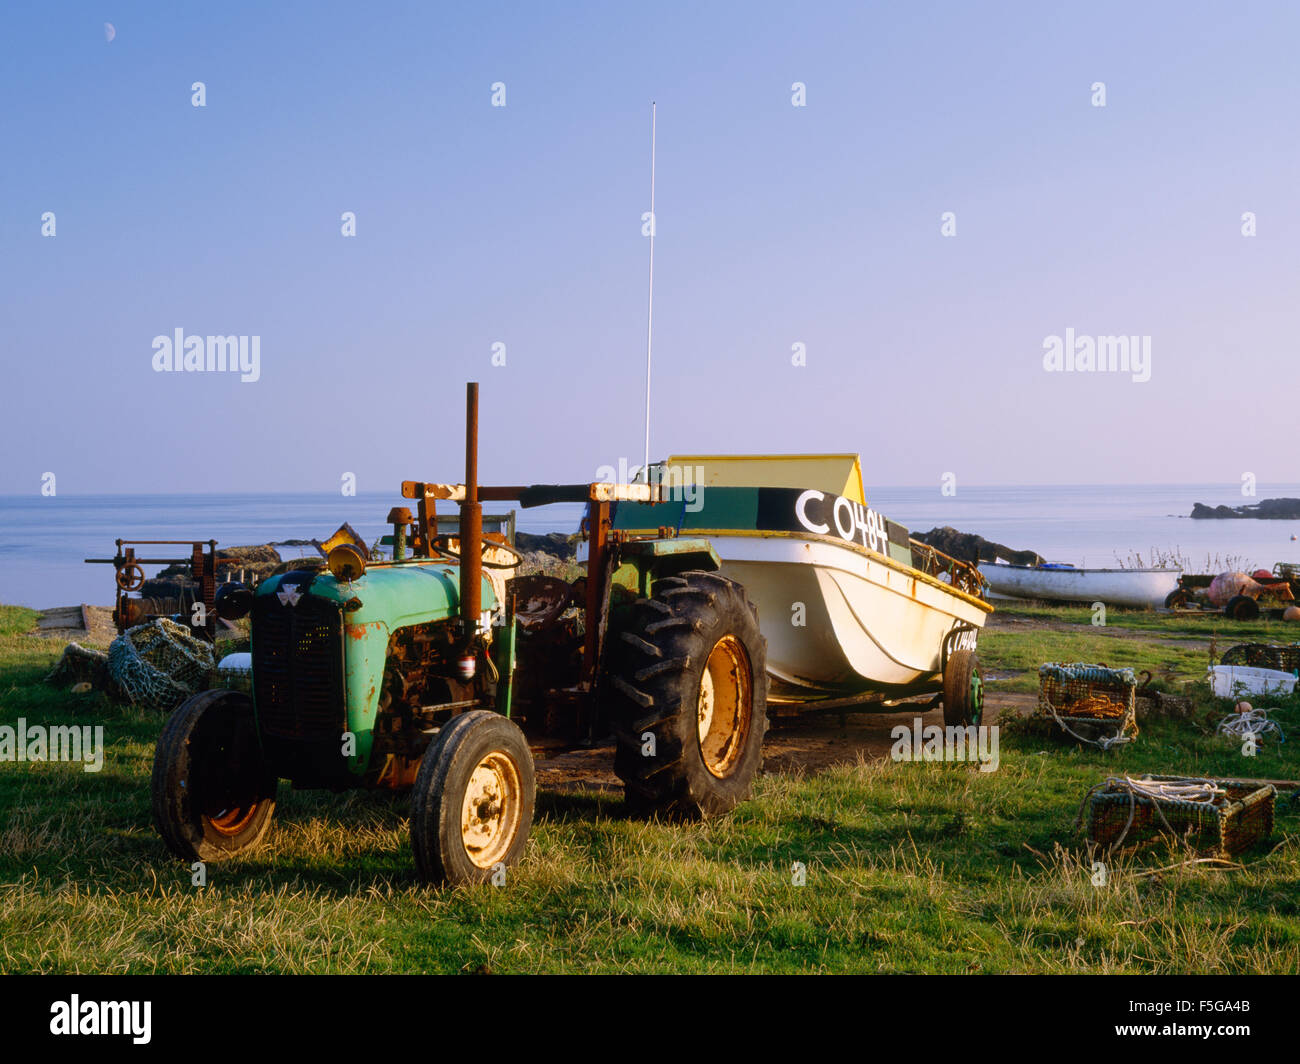 Fishing boat drawn up out of the sea by old tractor and trailer, Cafn, Bardsey Island, North Wales, UK Stock Photo